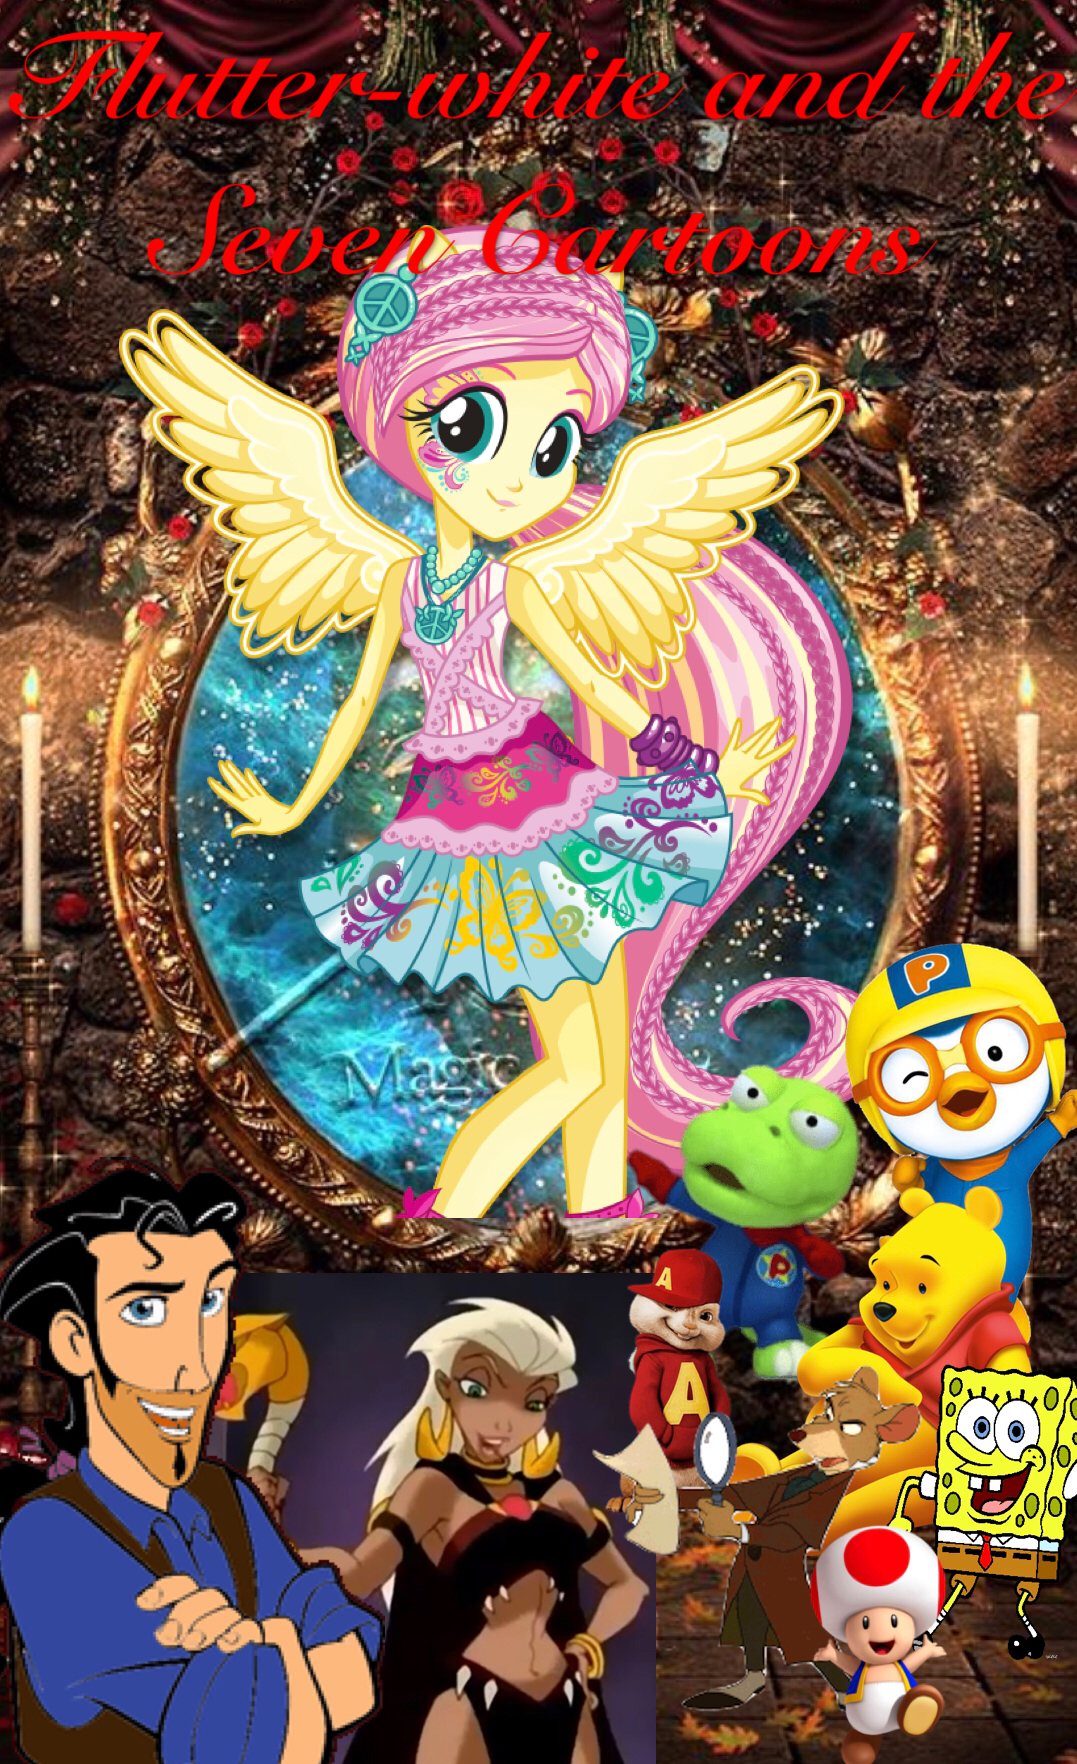 Flutter-White and the Seven Cartoons